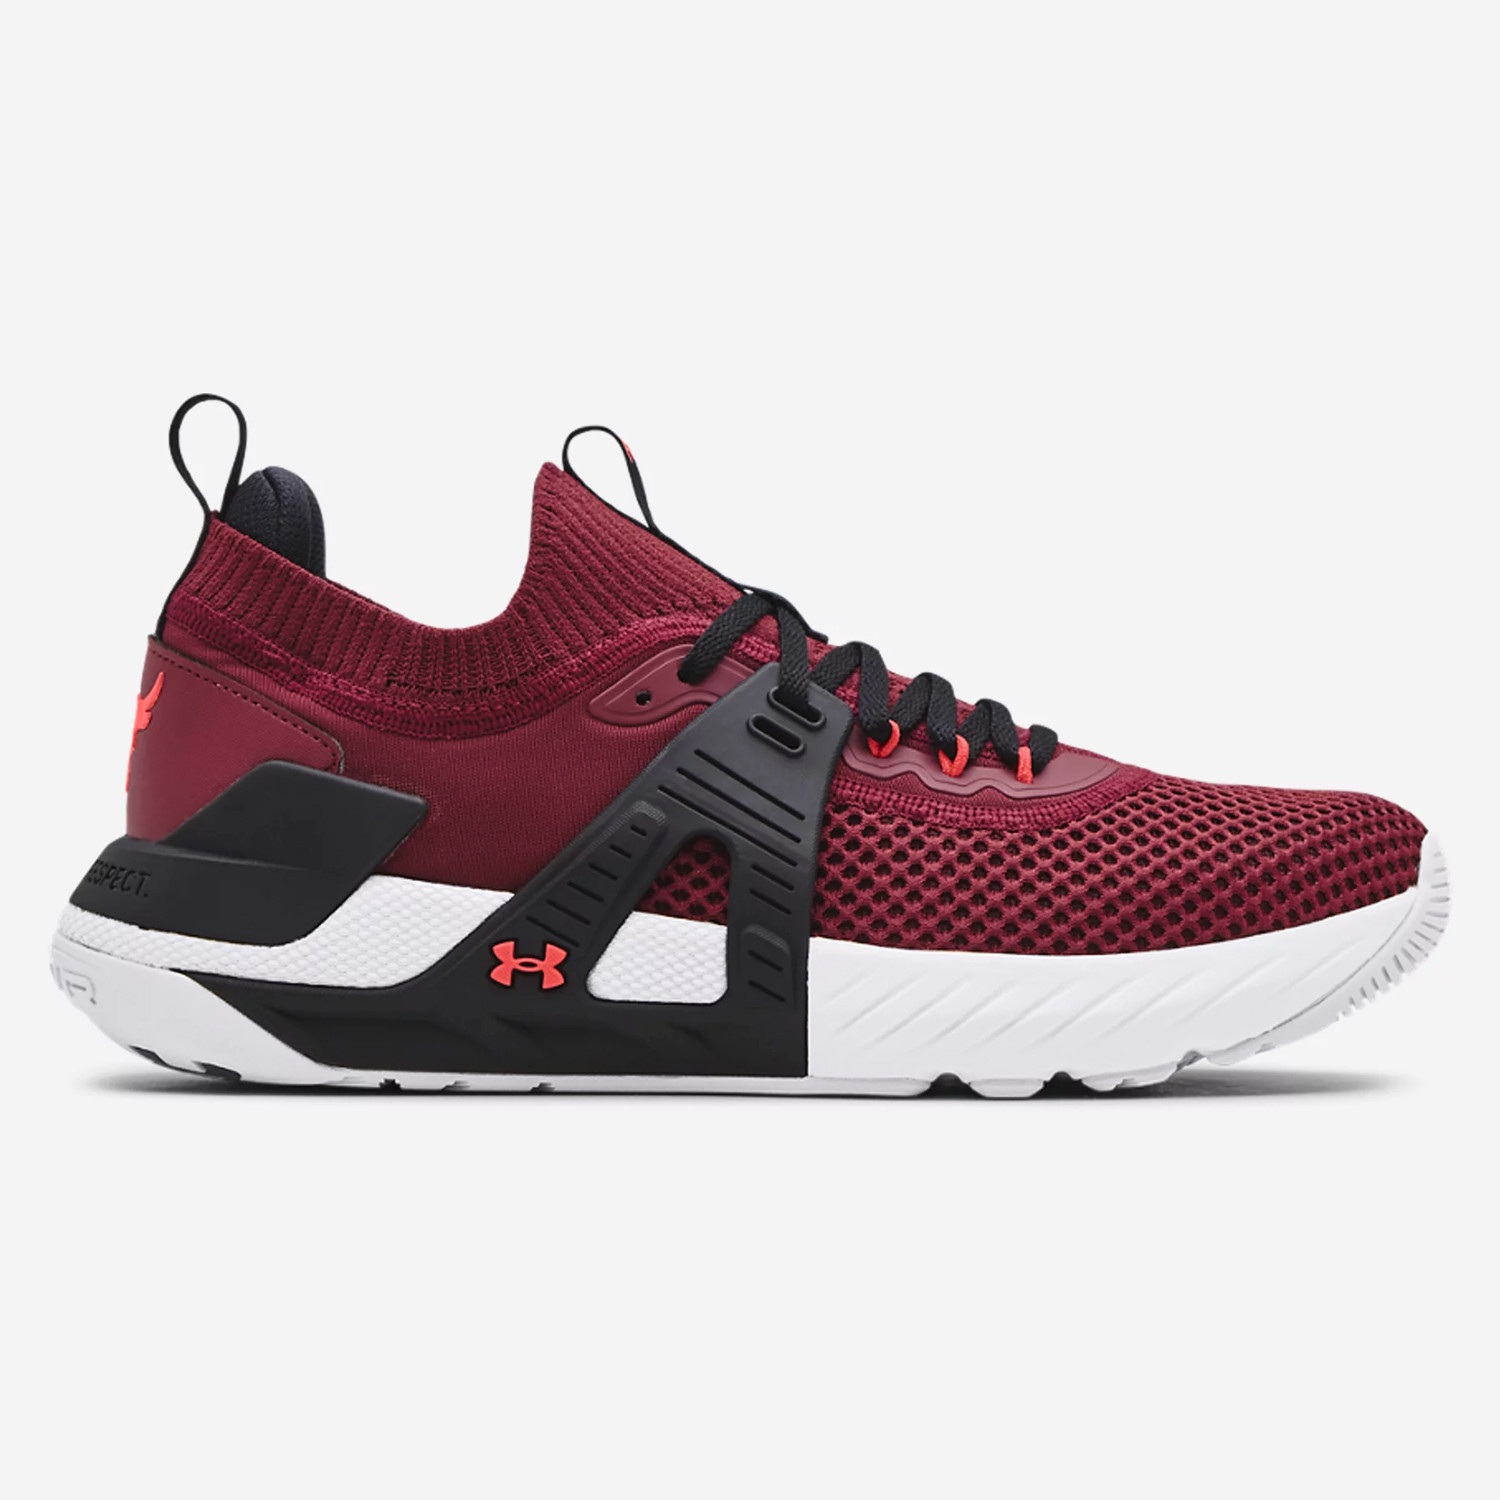 Under Armour Project Rock 4 Ανδρικά Παπούτσια (9000087623_55304)